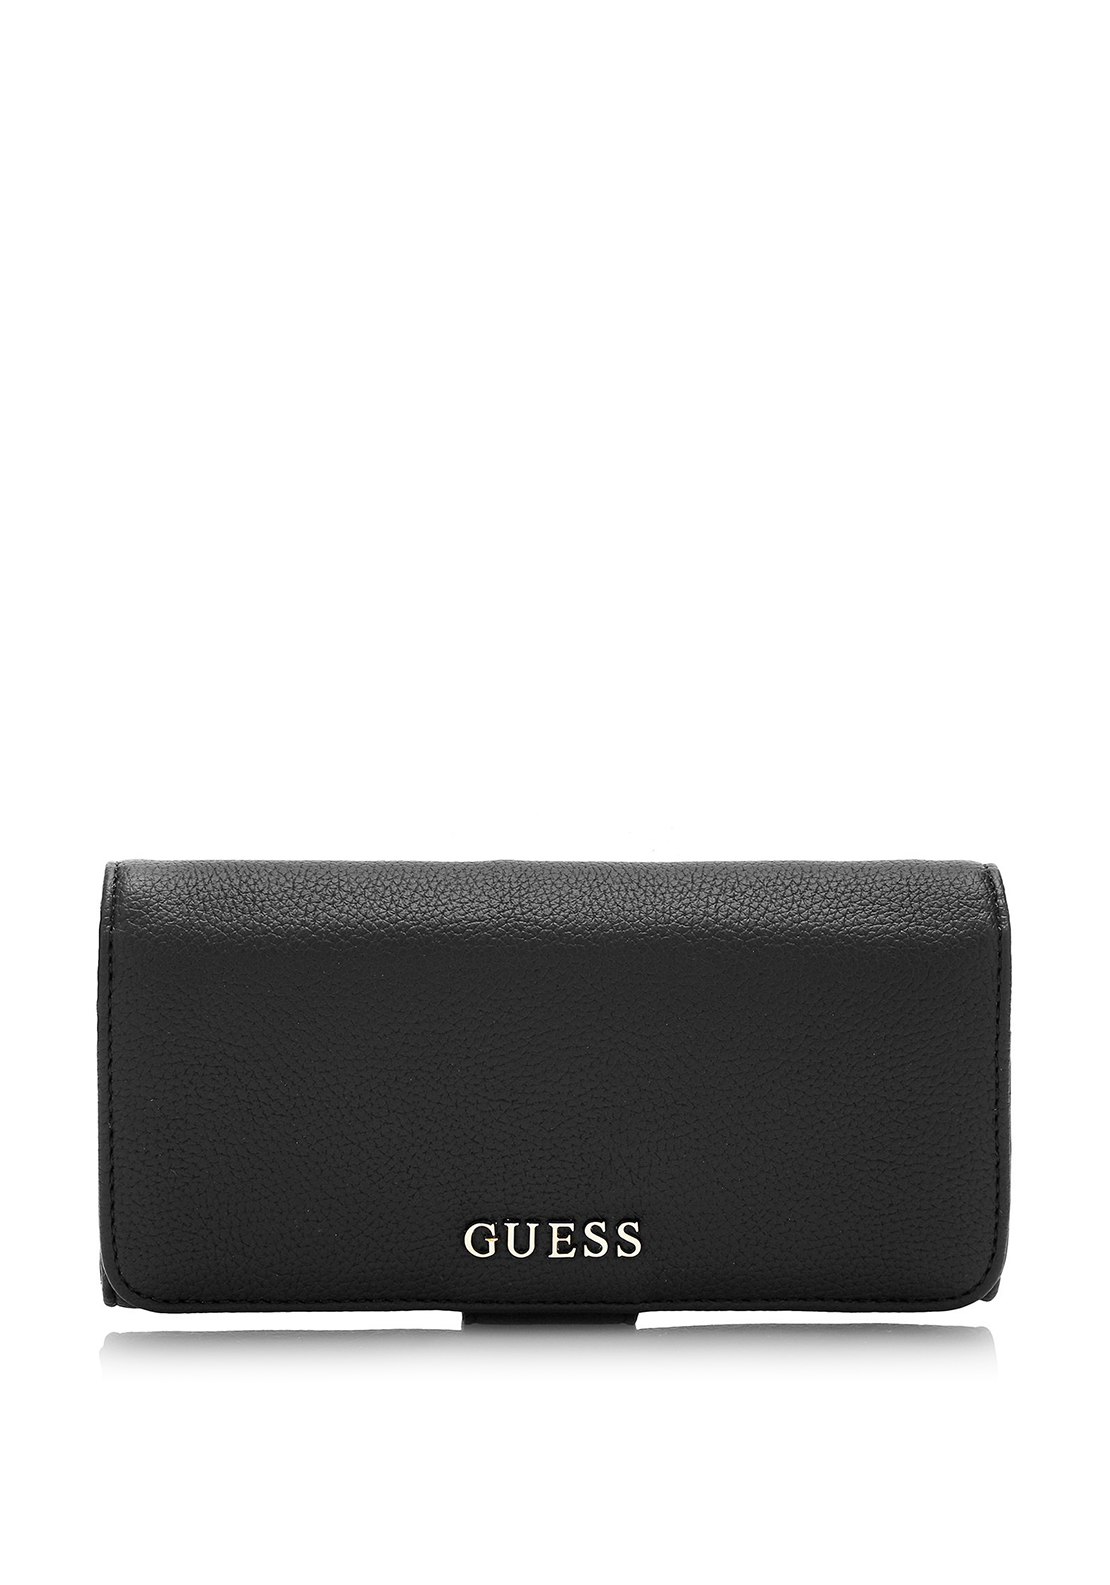 Guess Desiree Fold-Out Clutch Wallet, Black